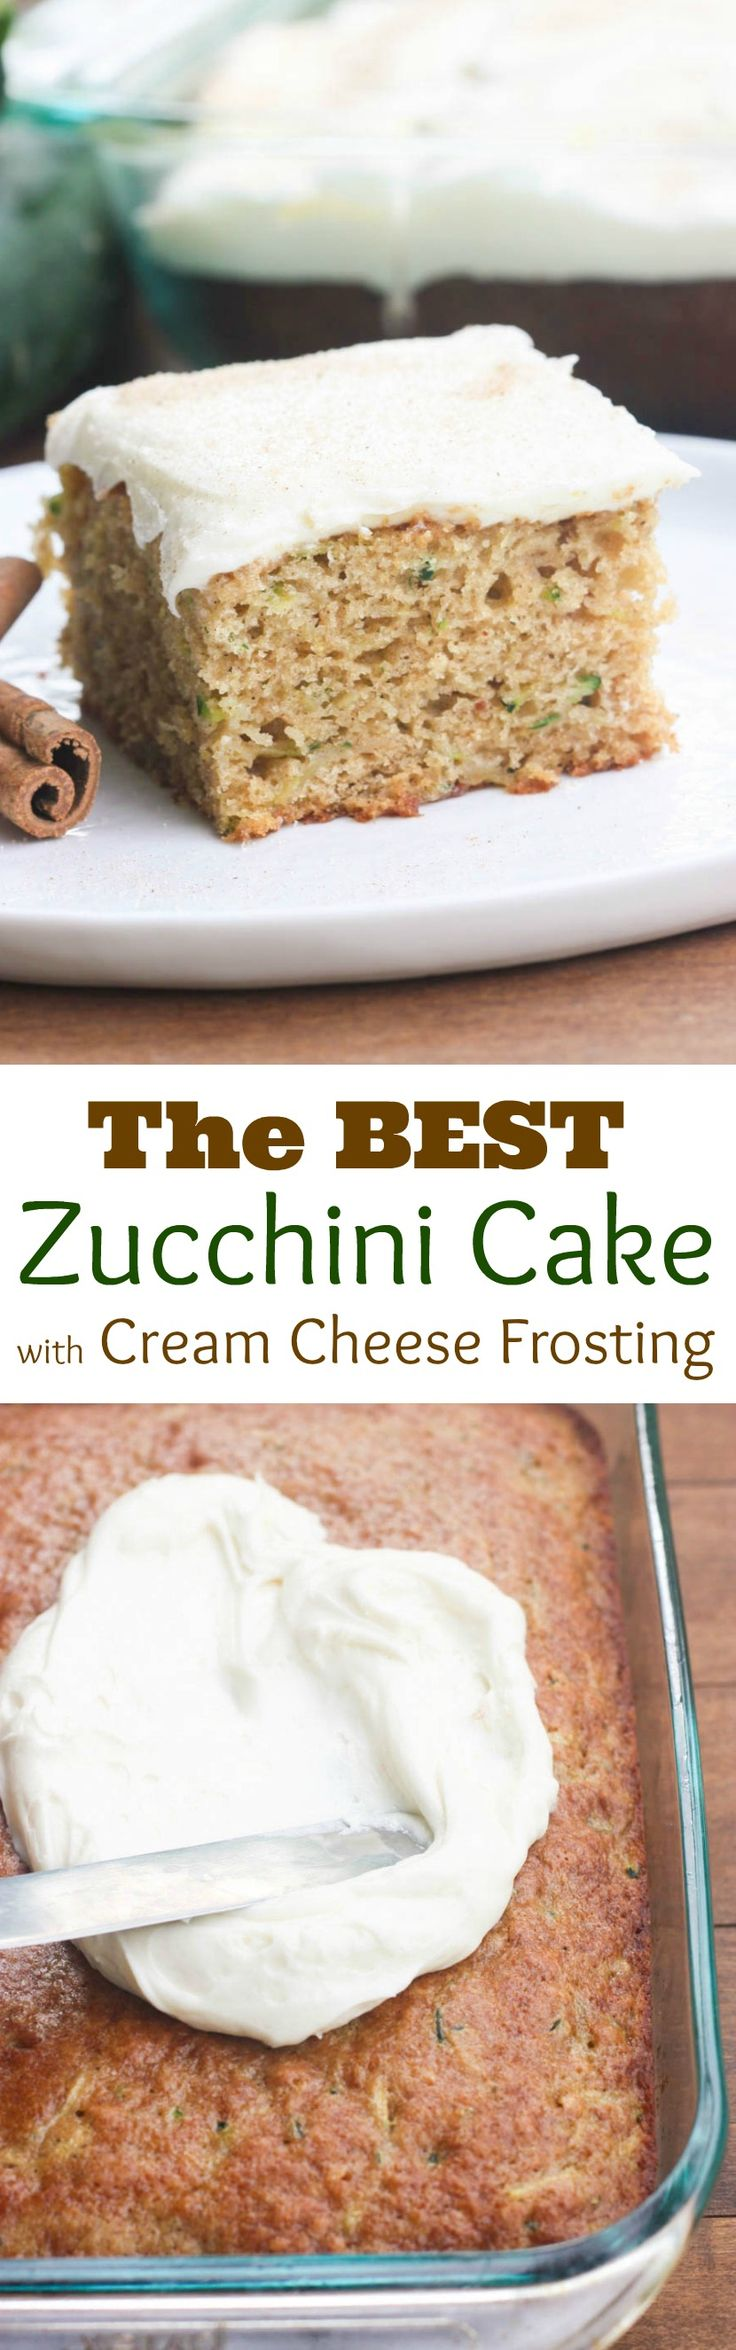 The BEST Zucchini Cake with Cream Cheese Frosting | Tastes Better From Scratch